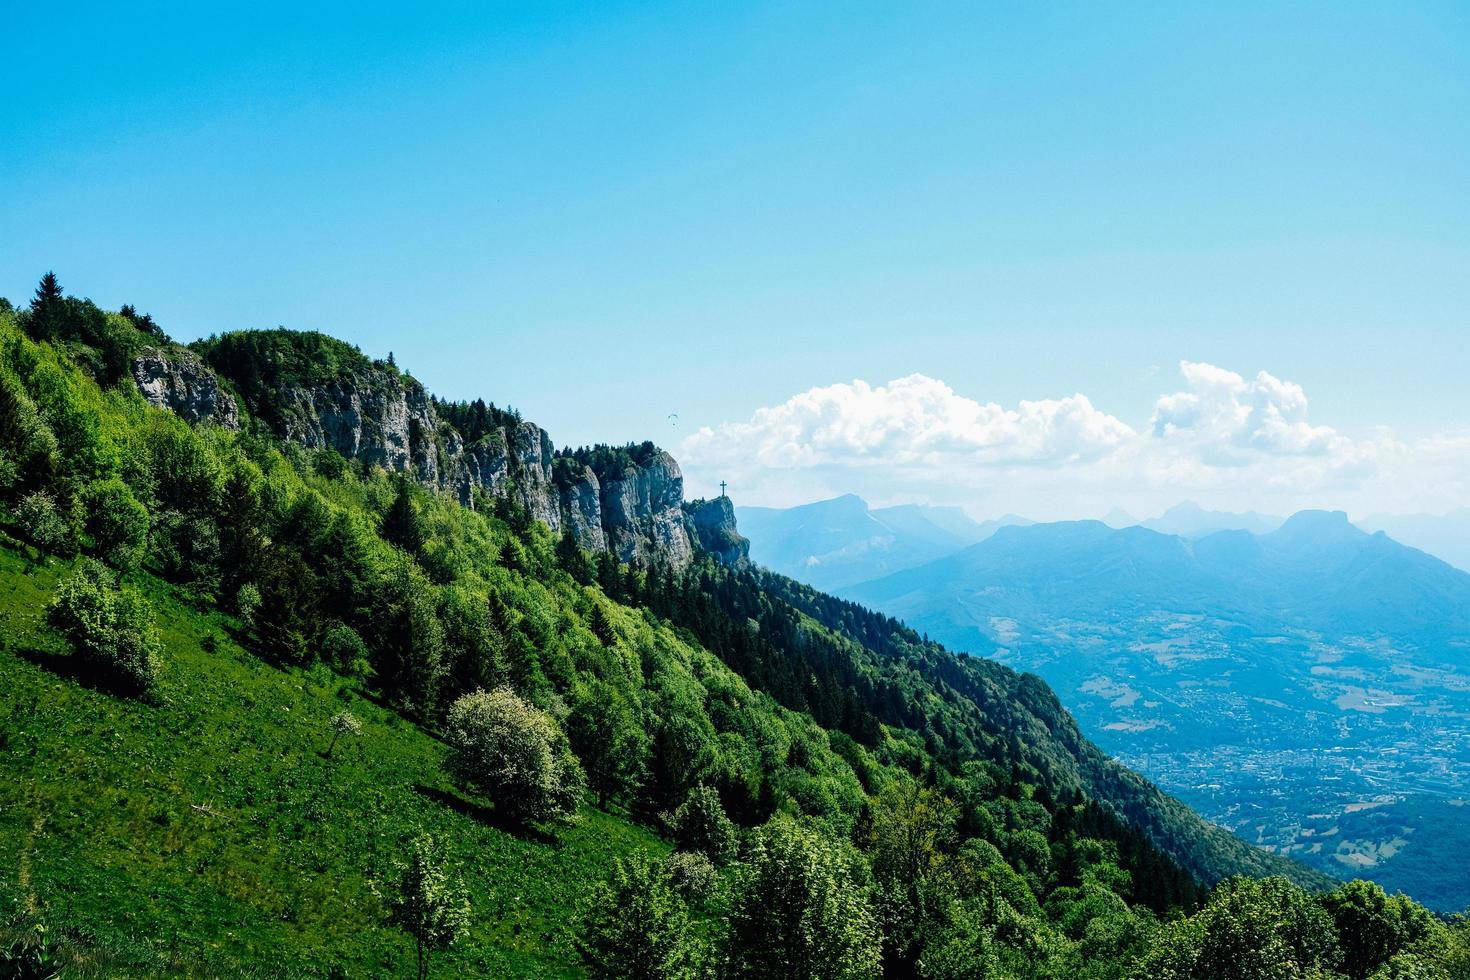 Green trees on mountain under blue sky photo